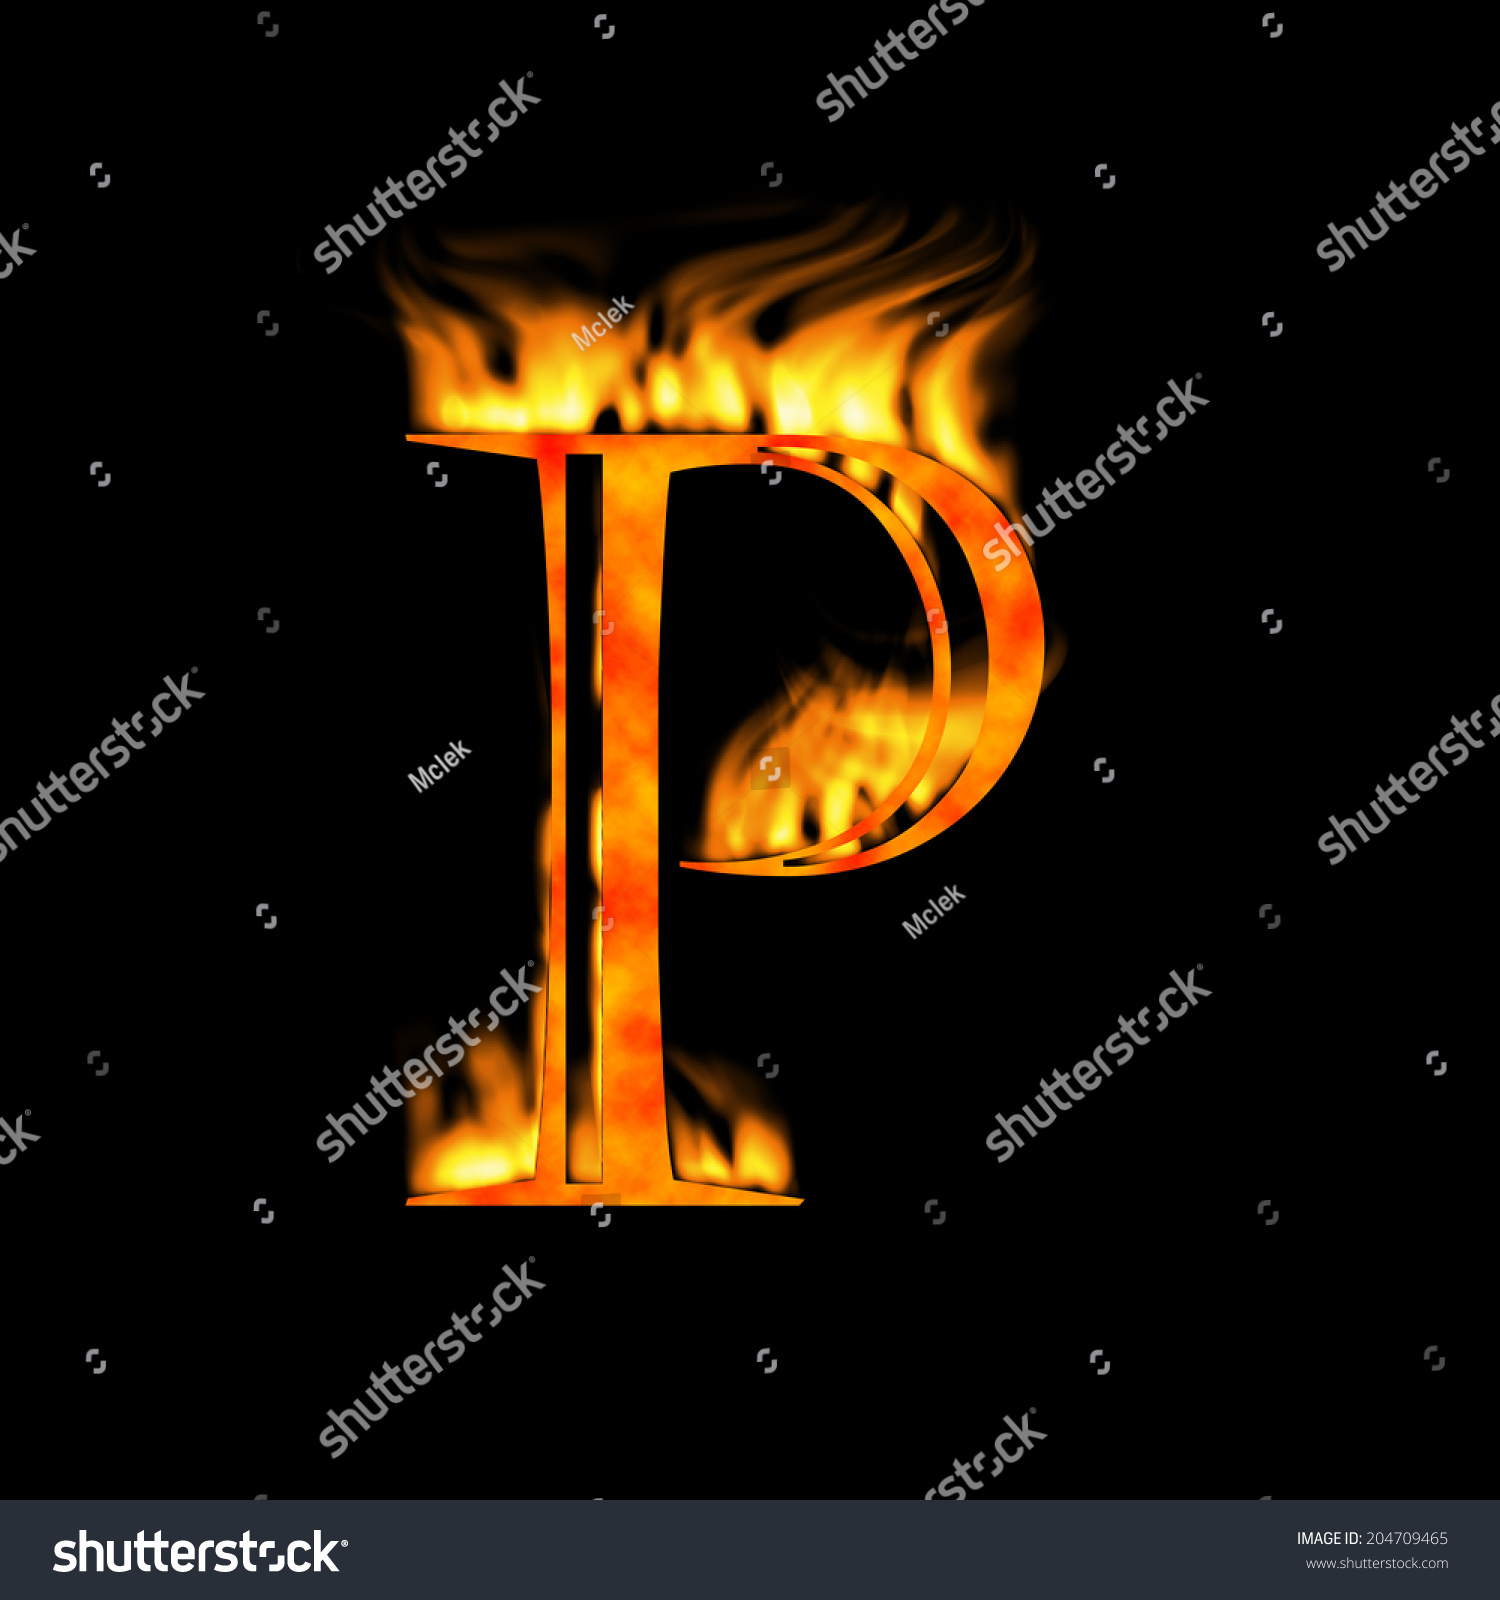 Letter p letter symbol fire alphabet stock illustration 204709465 letter p letter symbol fire alphabet letter isolated on black look for more buycottarizona Images